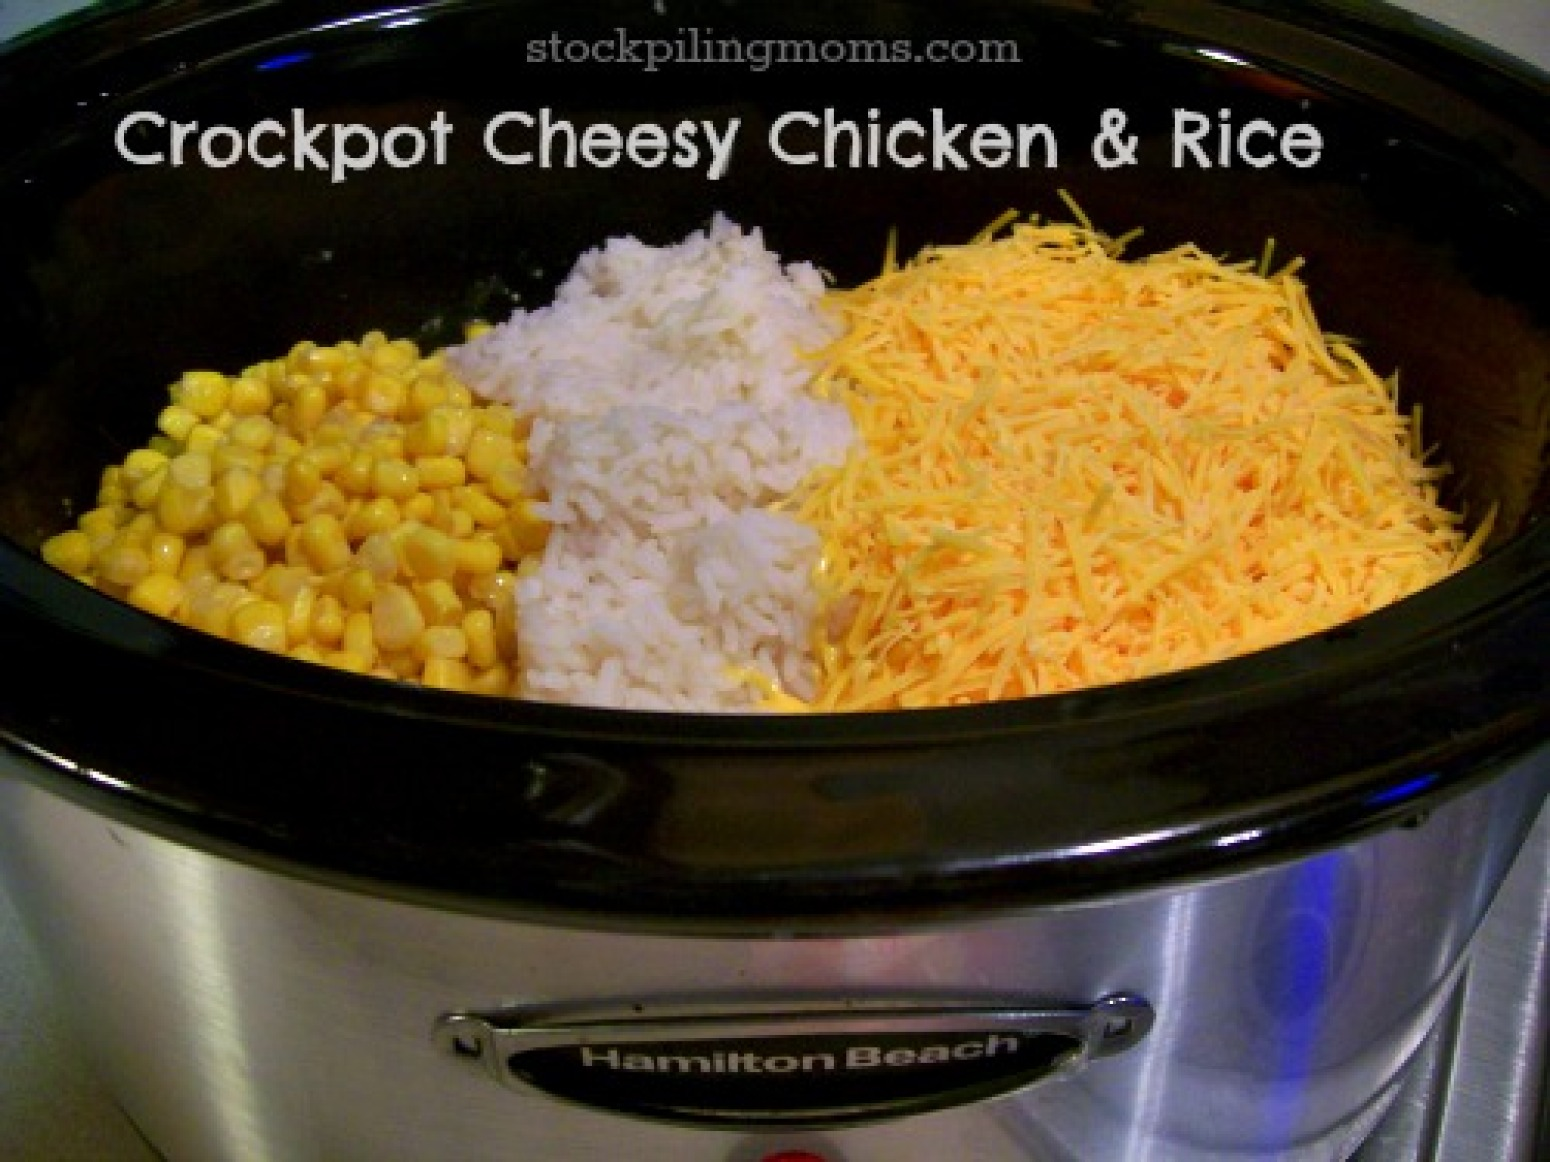 Crock-Pot Pesto Chicken. This recipe for Crock-Pot Pesto Chicken was originally a reader recipe sent to us from Amy M.. We love it when readers send us their recipes, however they often do not contain photos of the finished product.